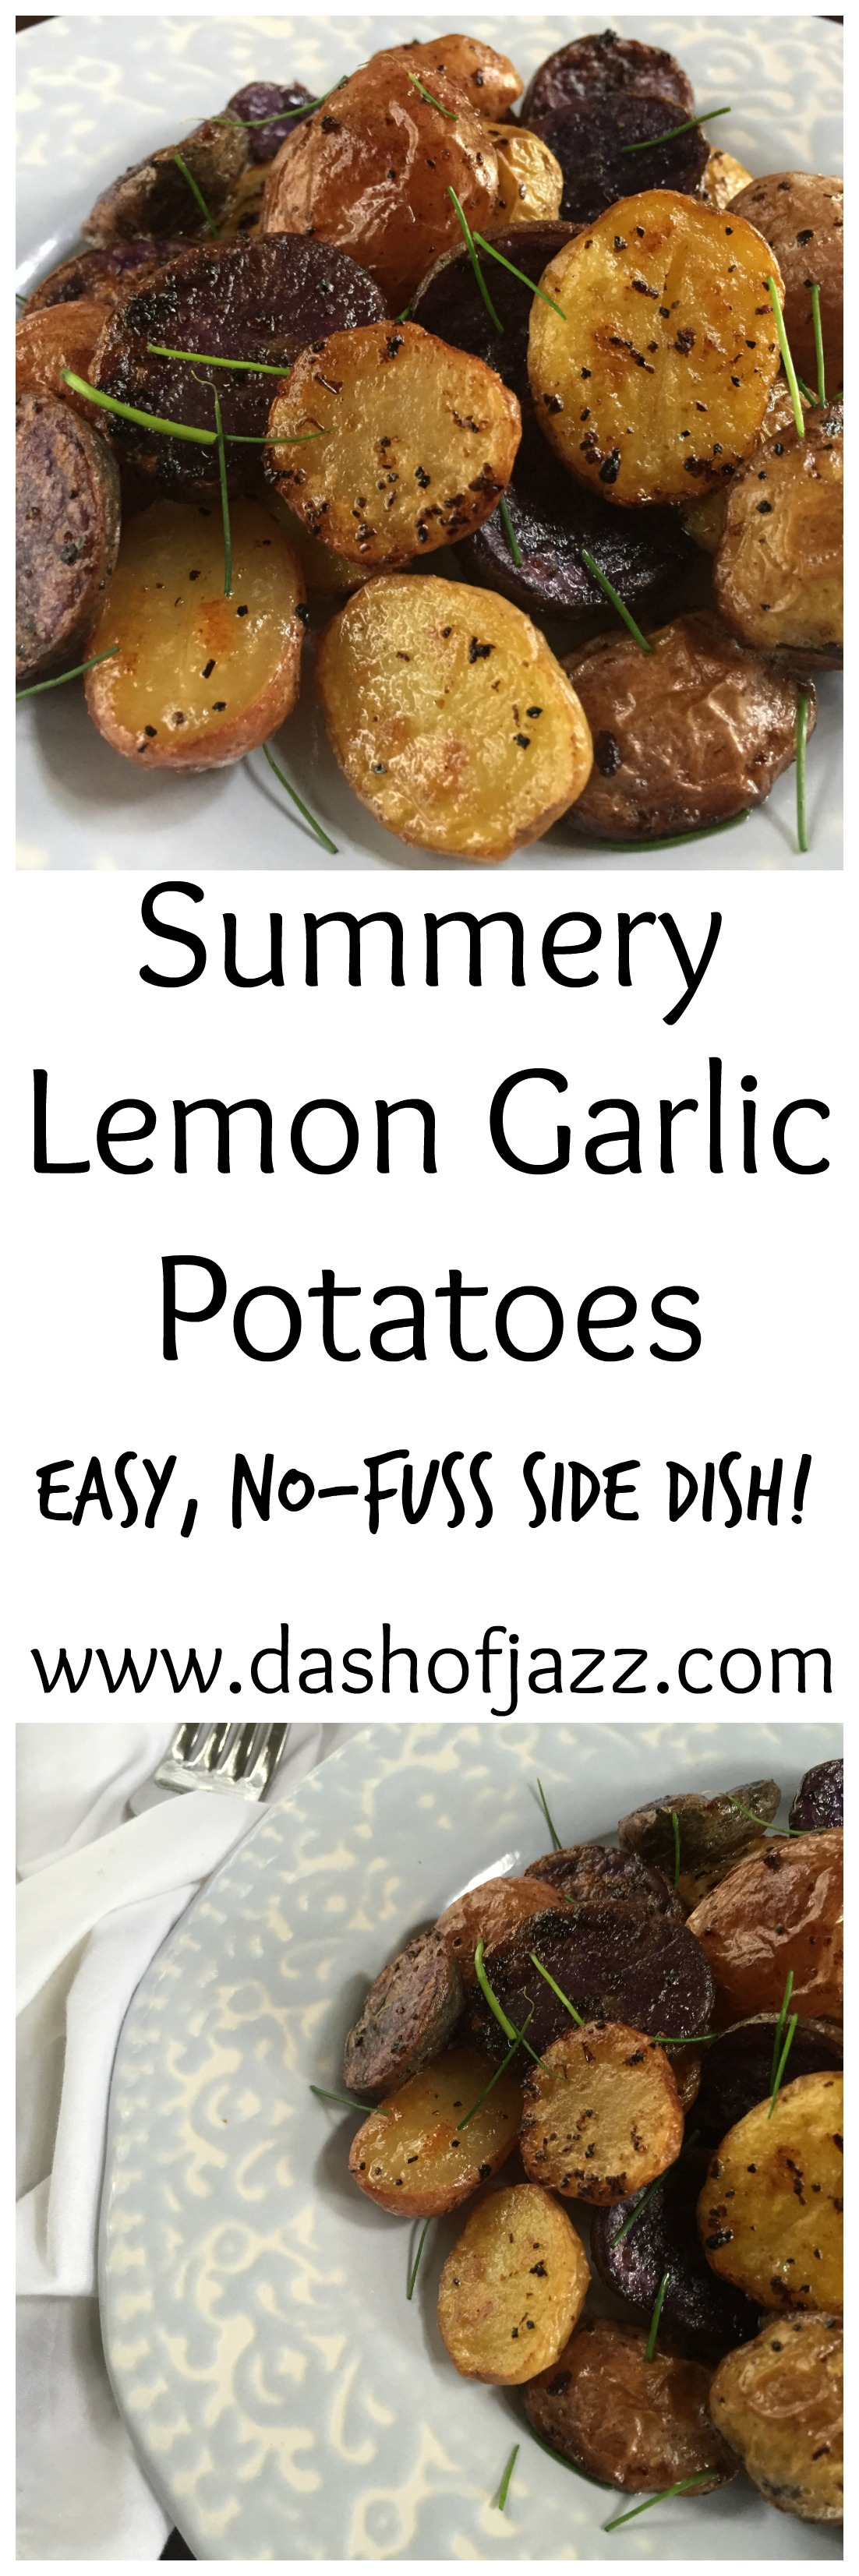 Summery Lemon Garlic Potatoes are a bright and delicious, no-fuss side dish perfect for summer! by Dash of Jazz